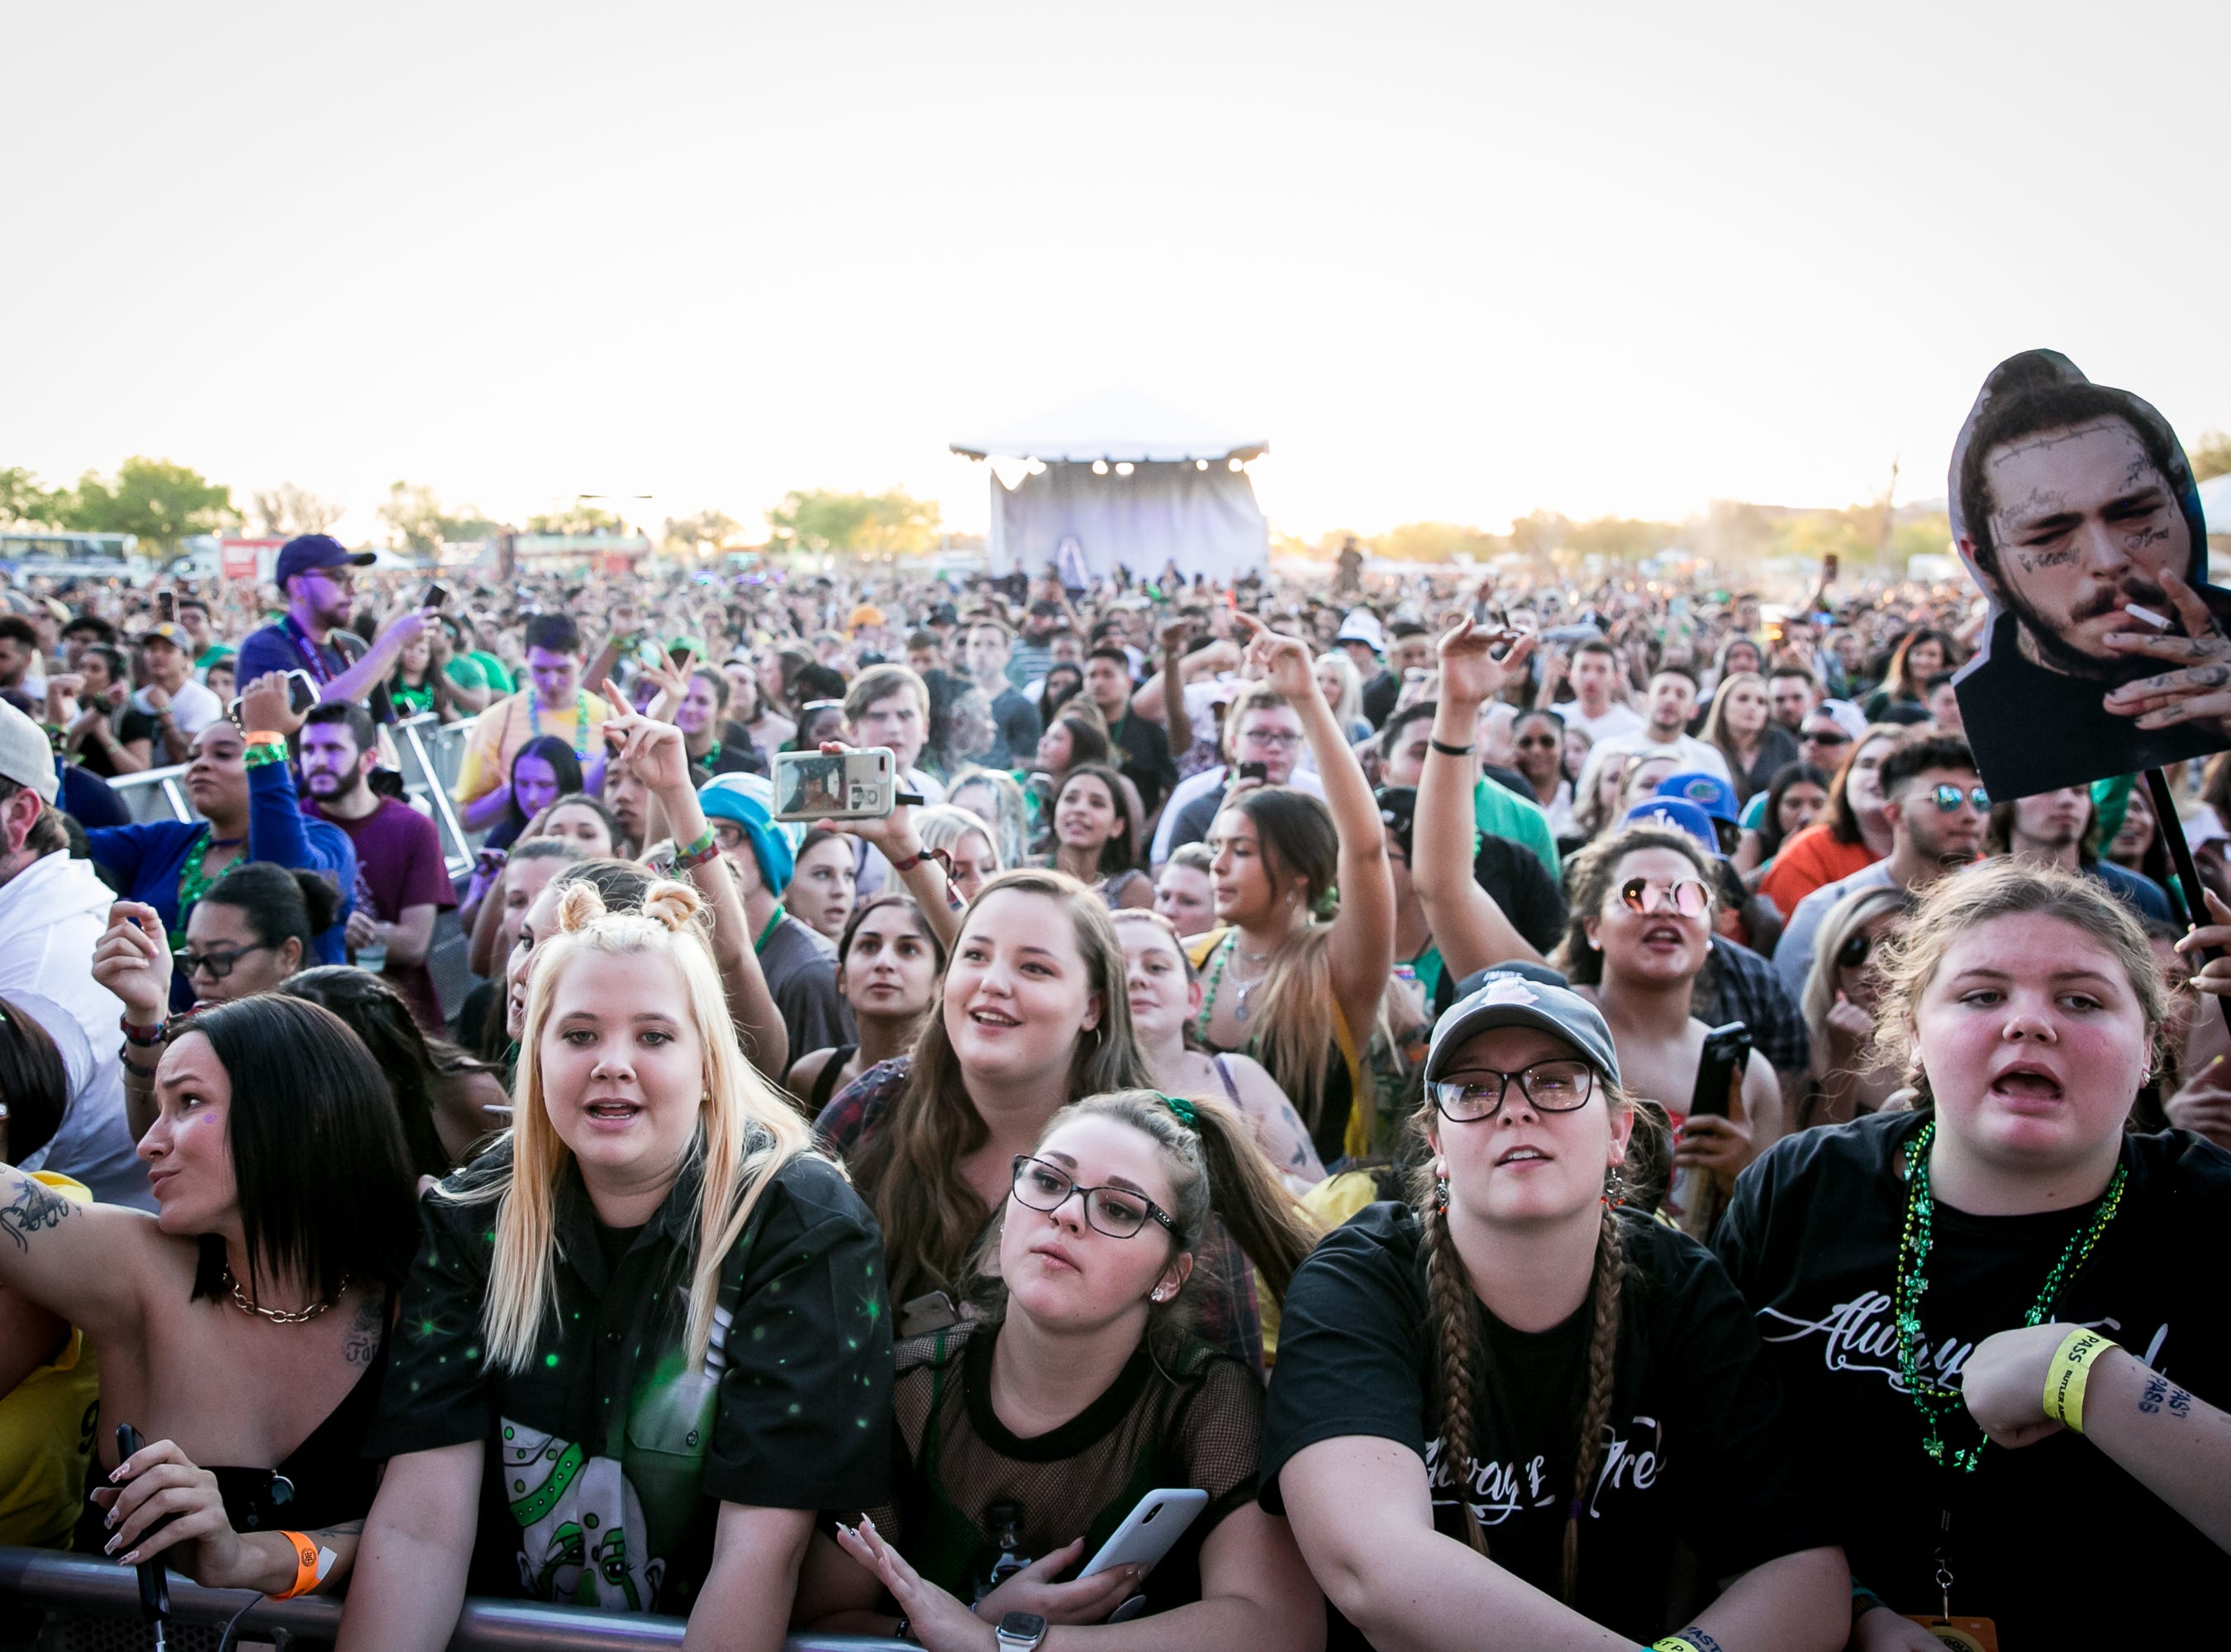 Fans couldn't wait to see Post Malone and Lil Pump at Pot of Gold Music Festival on Sunday, March 17, 2019.